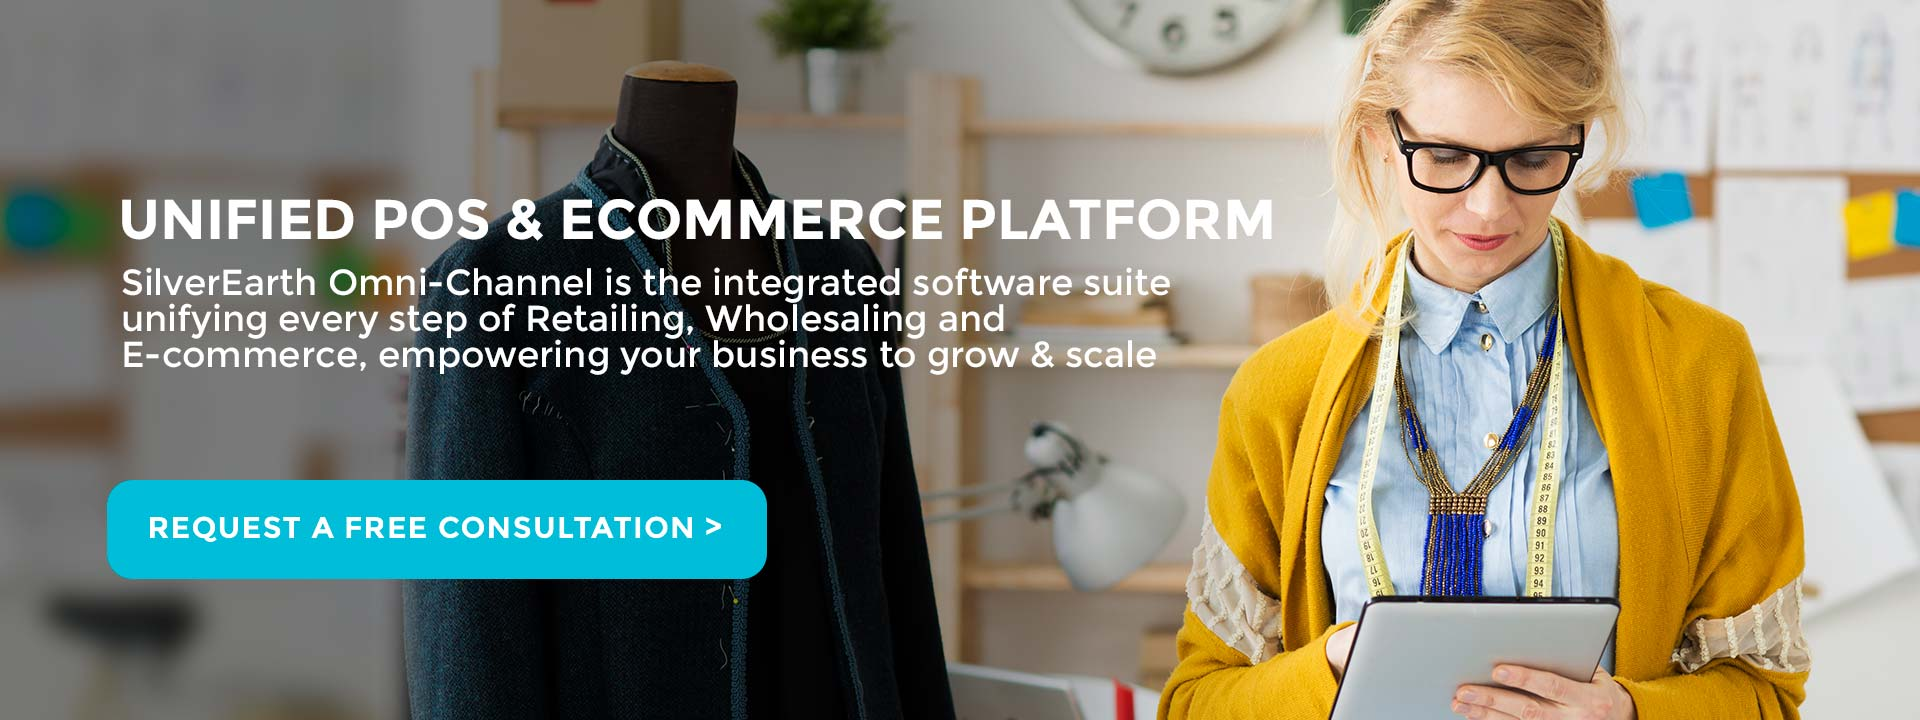 Omni Channel Commerce is THE Unified POS & Ecommerce Platform